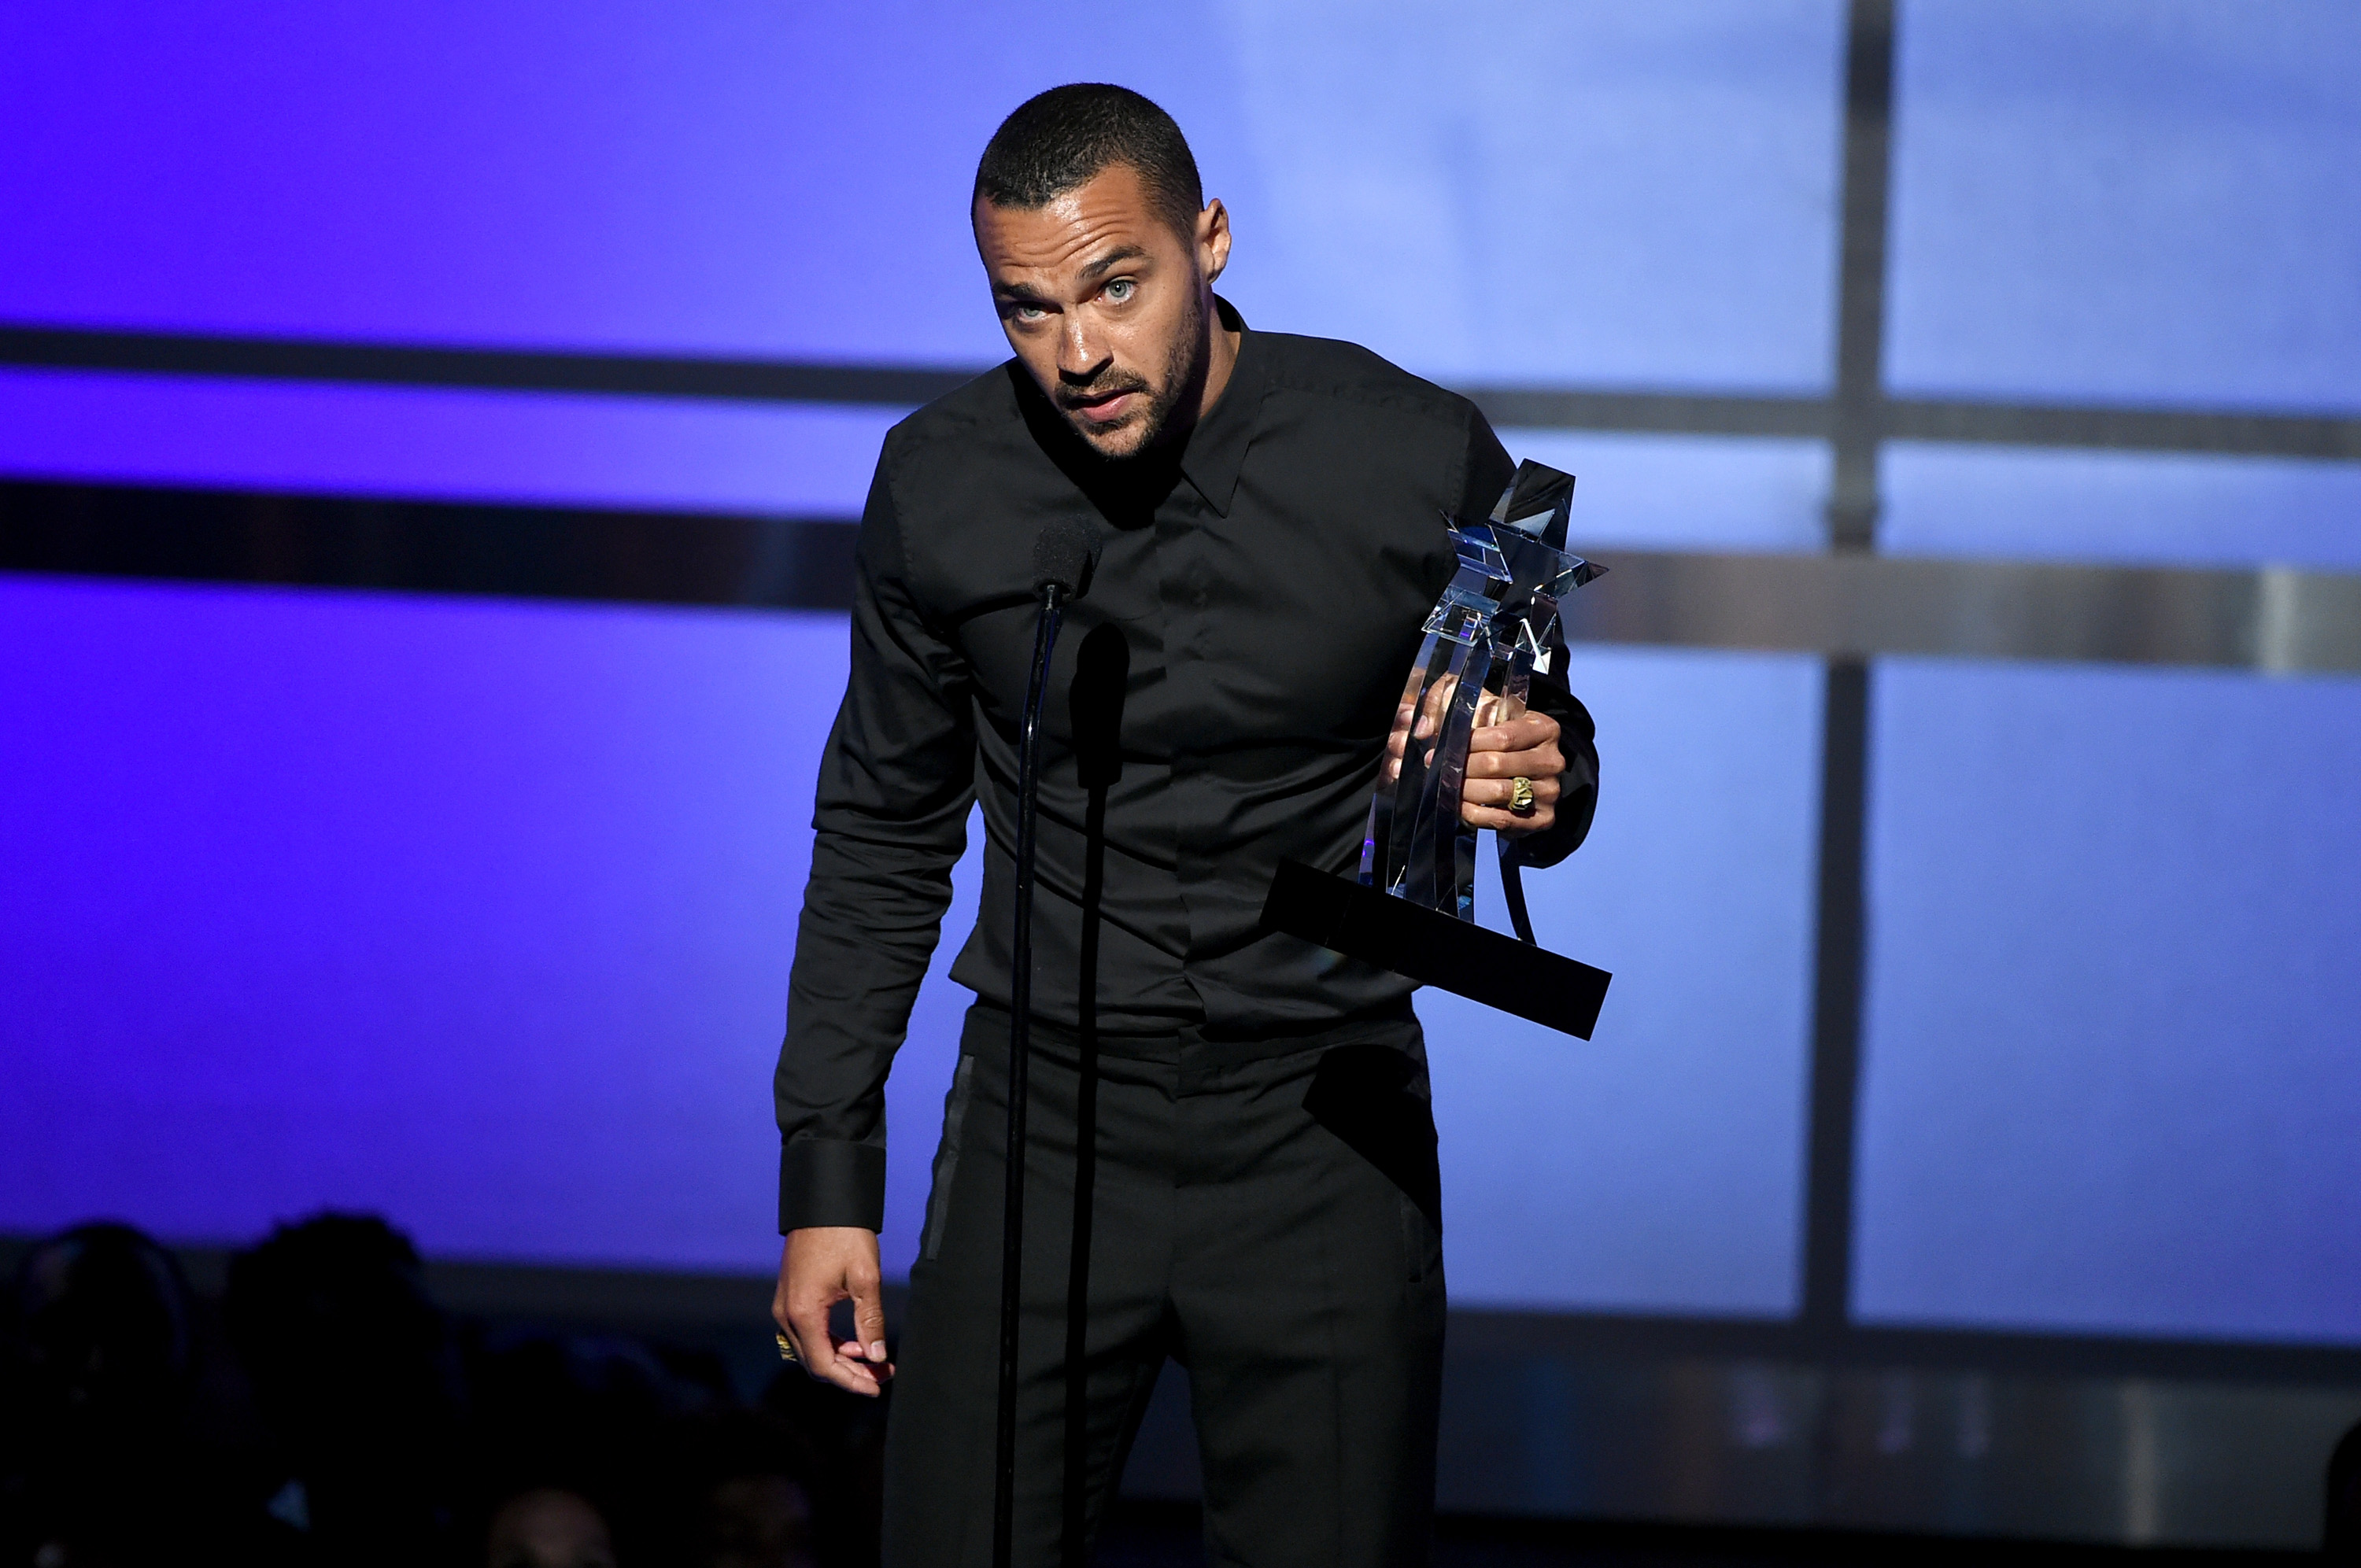 Honoree Jesse Williams accepts the Humanitarian Award onstage during the 2016 BET Awards at the Microsoft Theater on June 26, 2016 in Los Angeles, California.